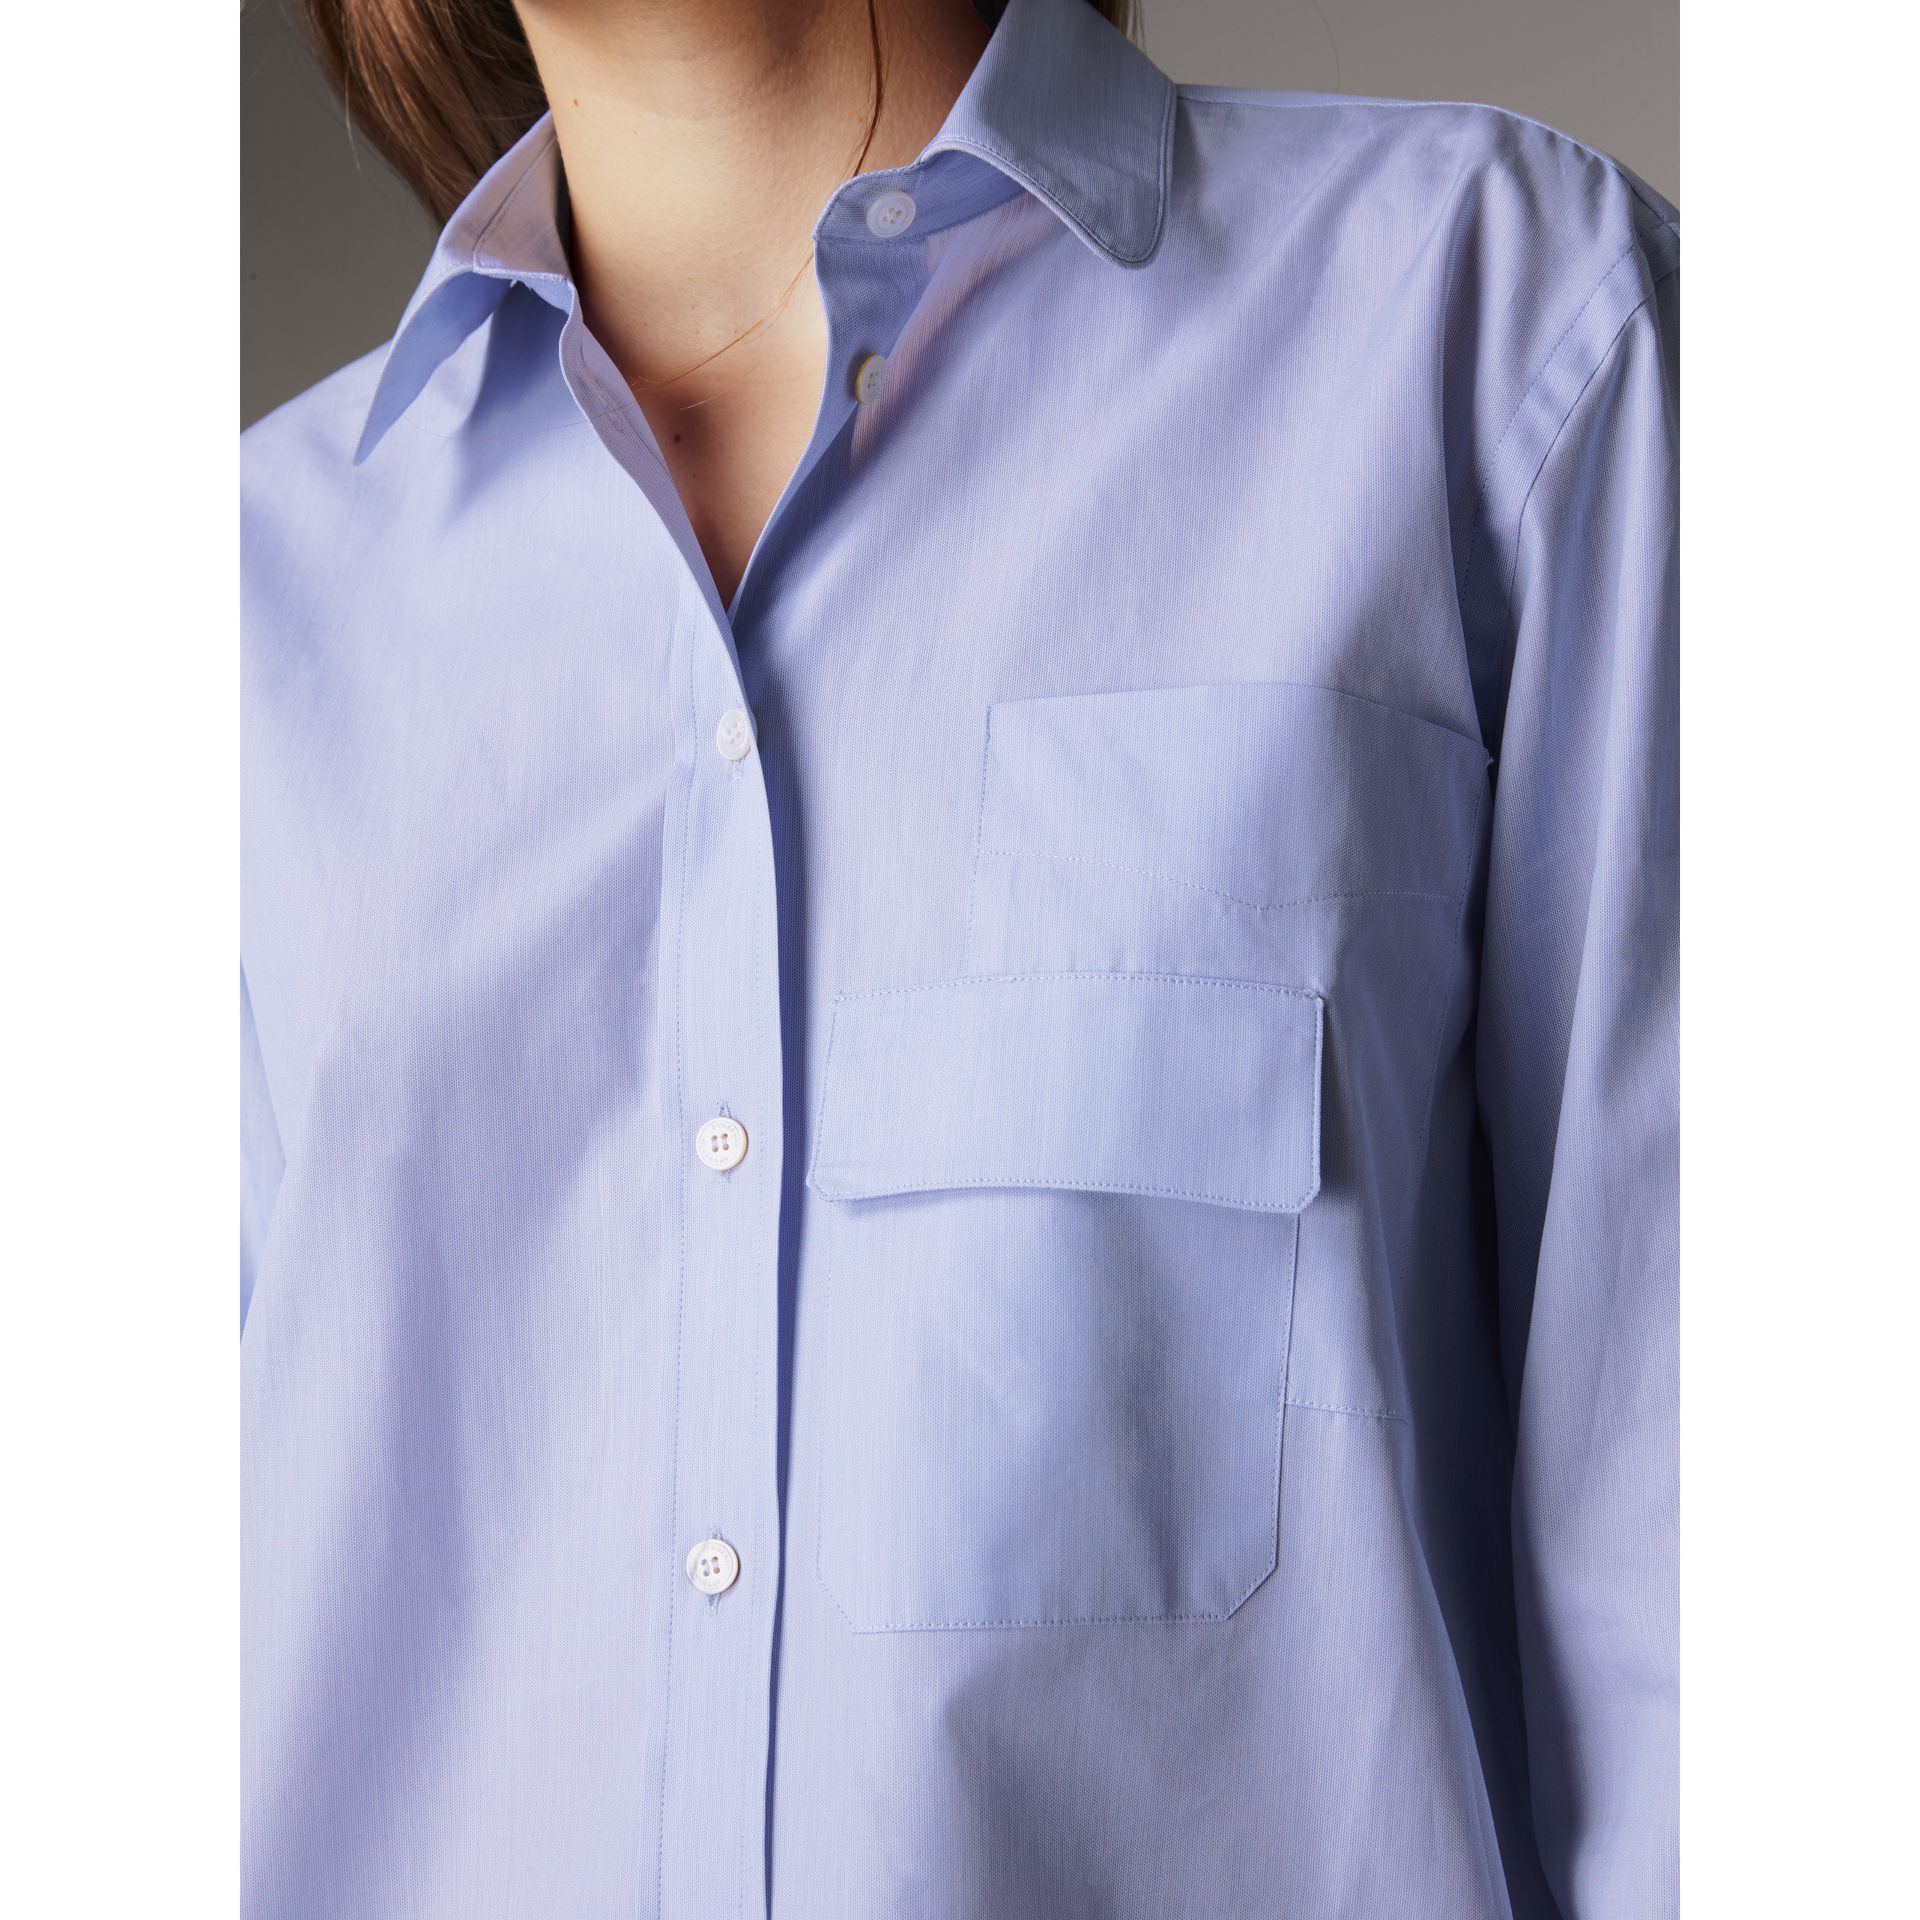 Double Pocket Cotton Oversize Shirt in Pale Blue - Women | Burberry - gallery image 2